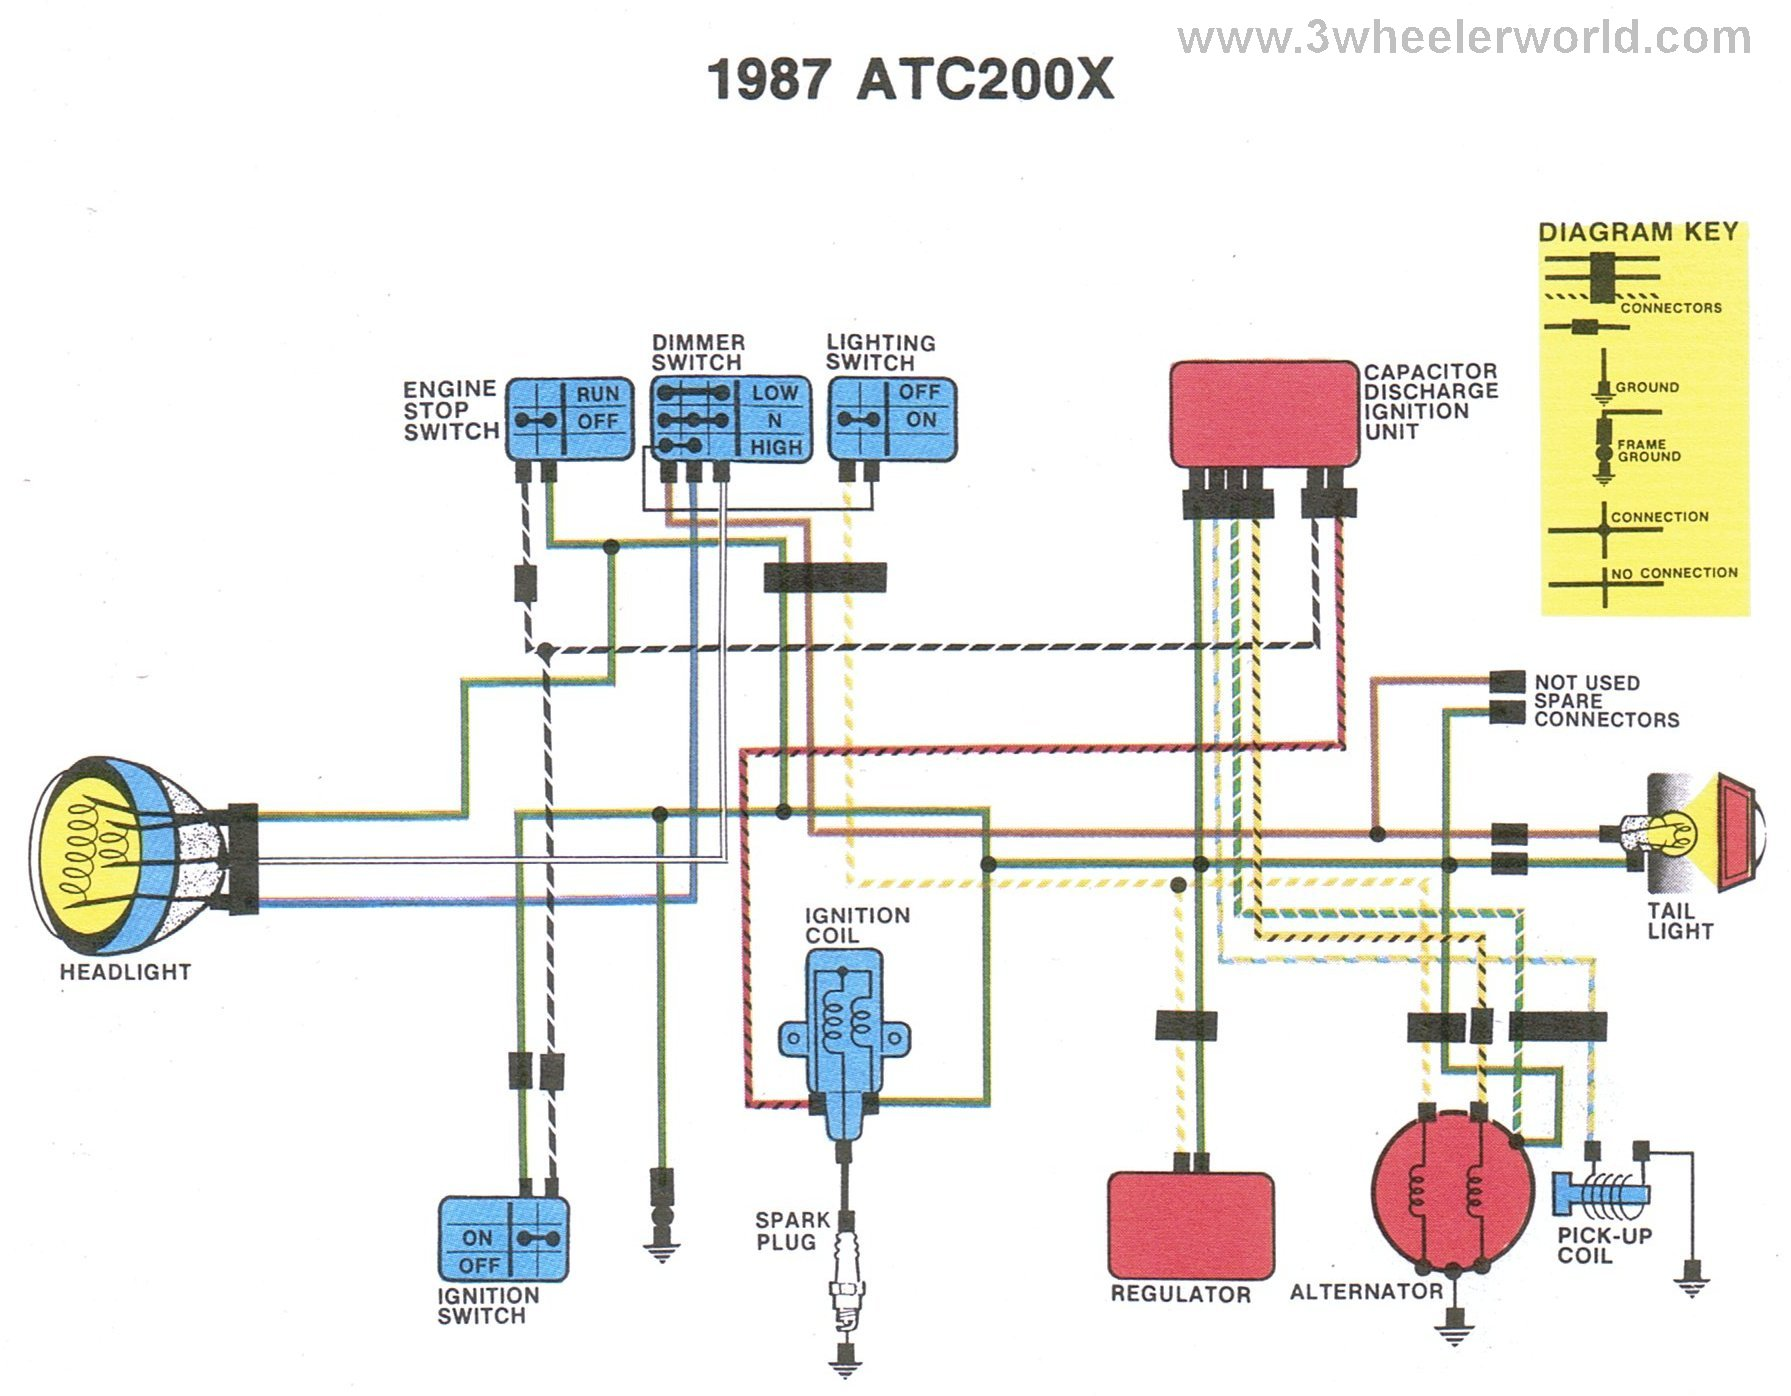 ATC200Xx87 3 wheeler world tech help honda wiring diagrams honda trx200 wiring diagram at n-0.co